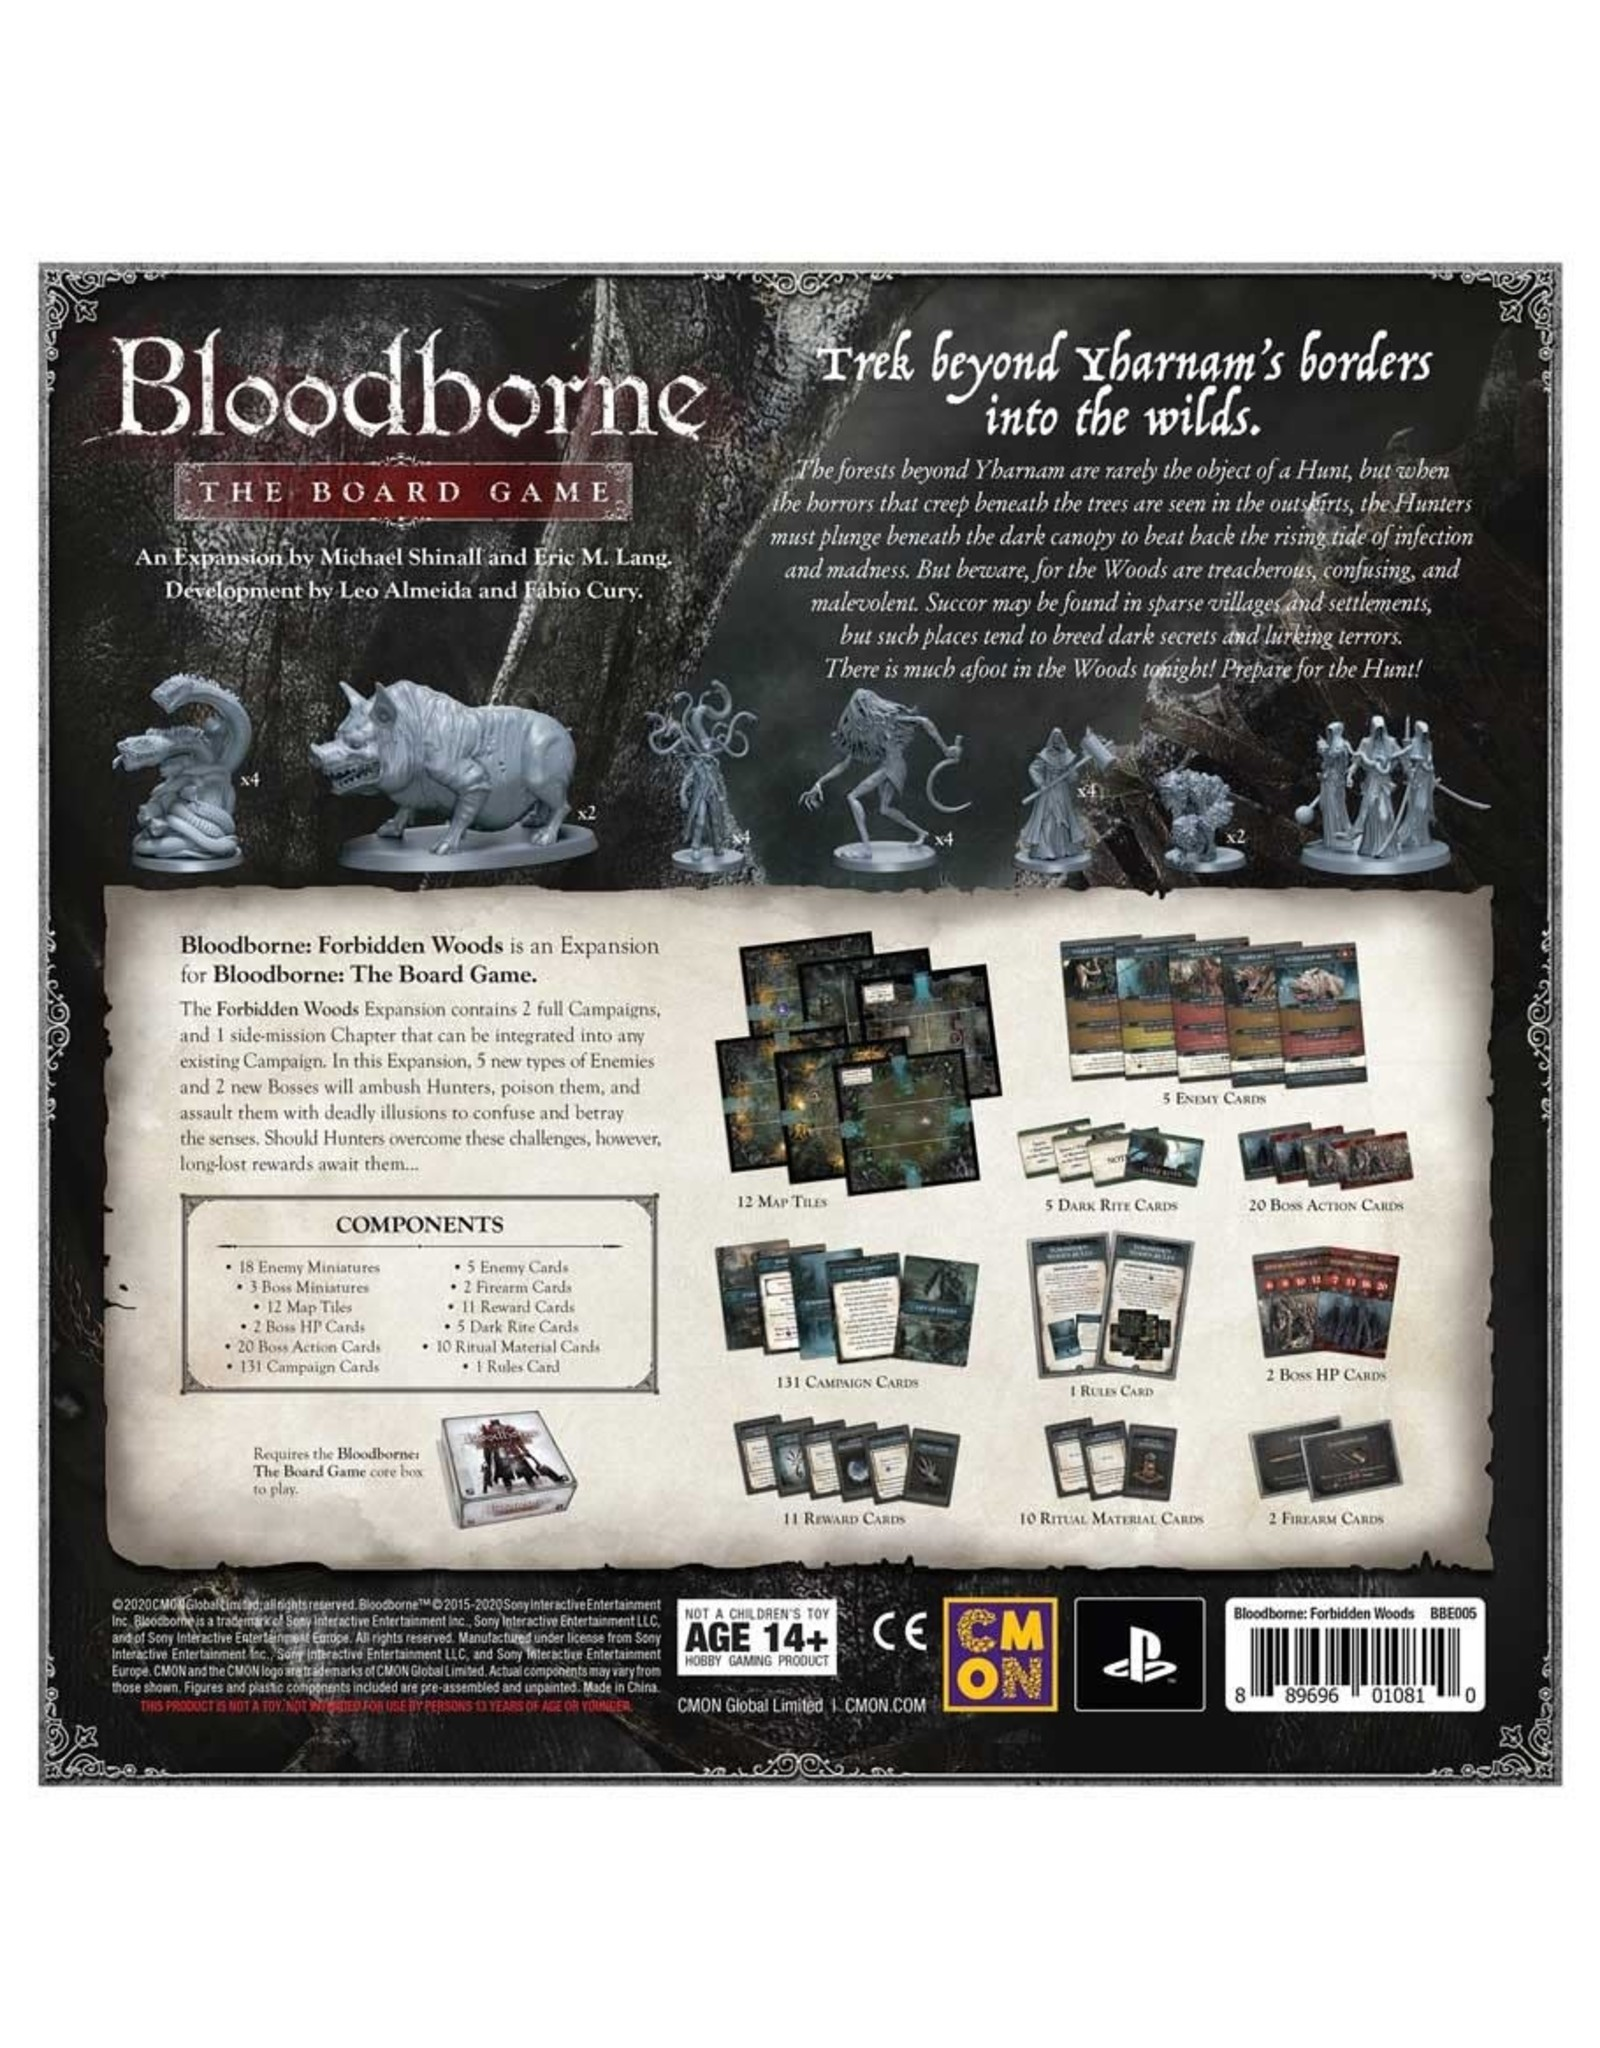 Cool Mini or Not PREORDER: Forbidden Woods - Bloodborne The Board Game